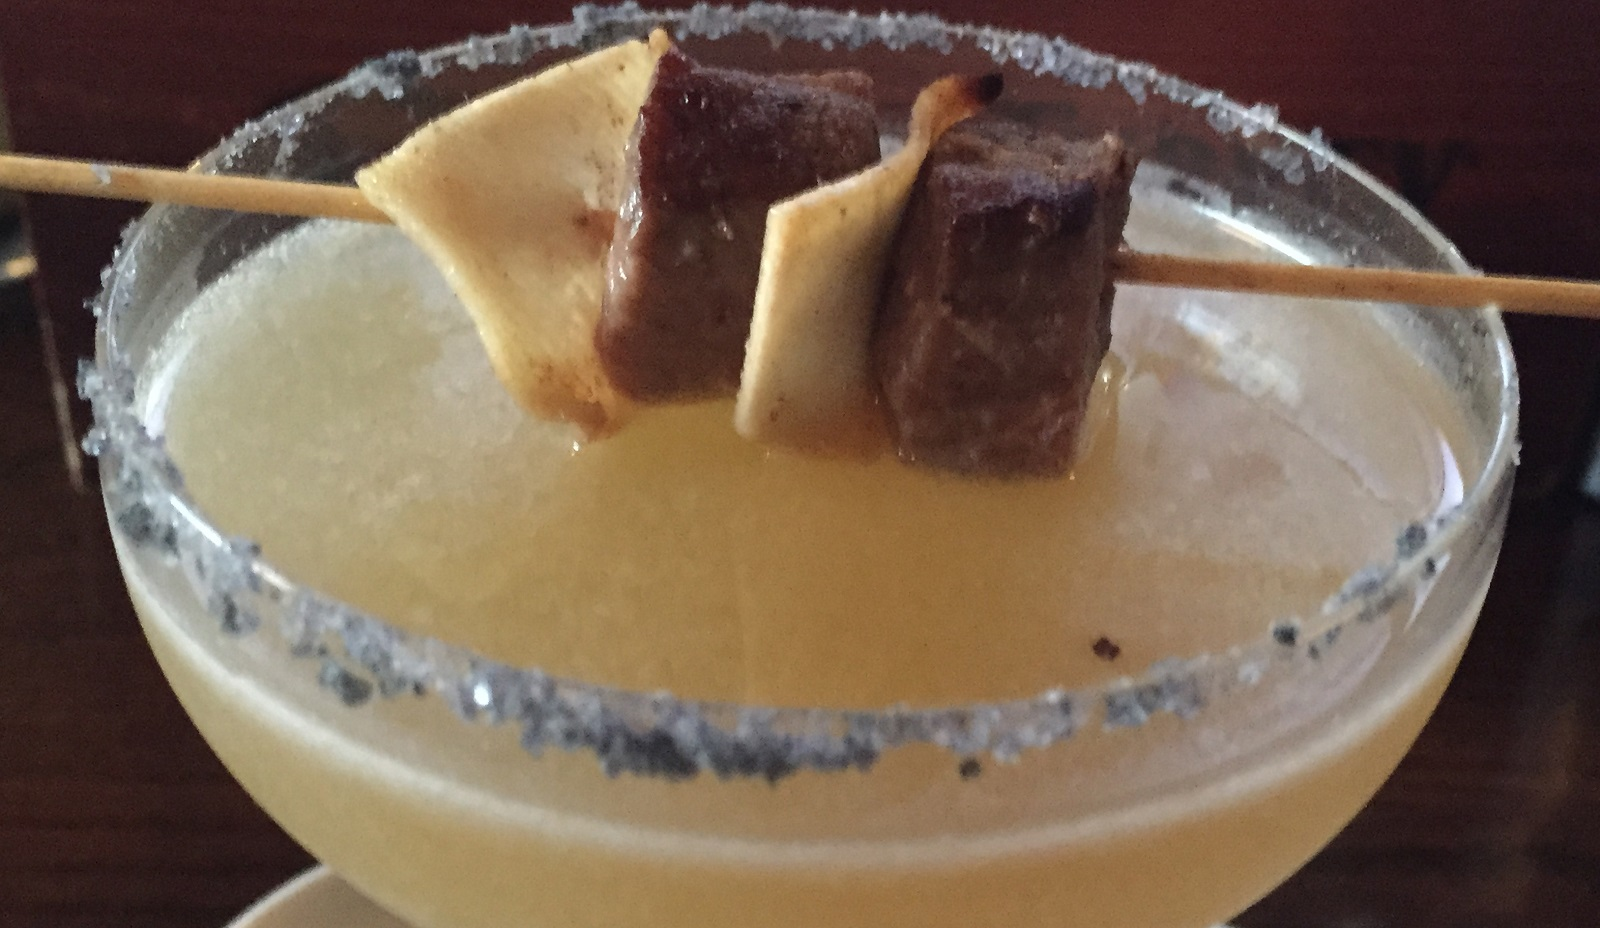 A close-up of the Charlie Schwabl's Queen City Daiquiri from Mes Que on Hertel. (Lizz Schumer/Special to the News)